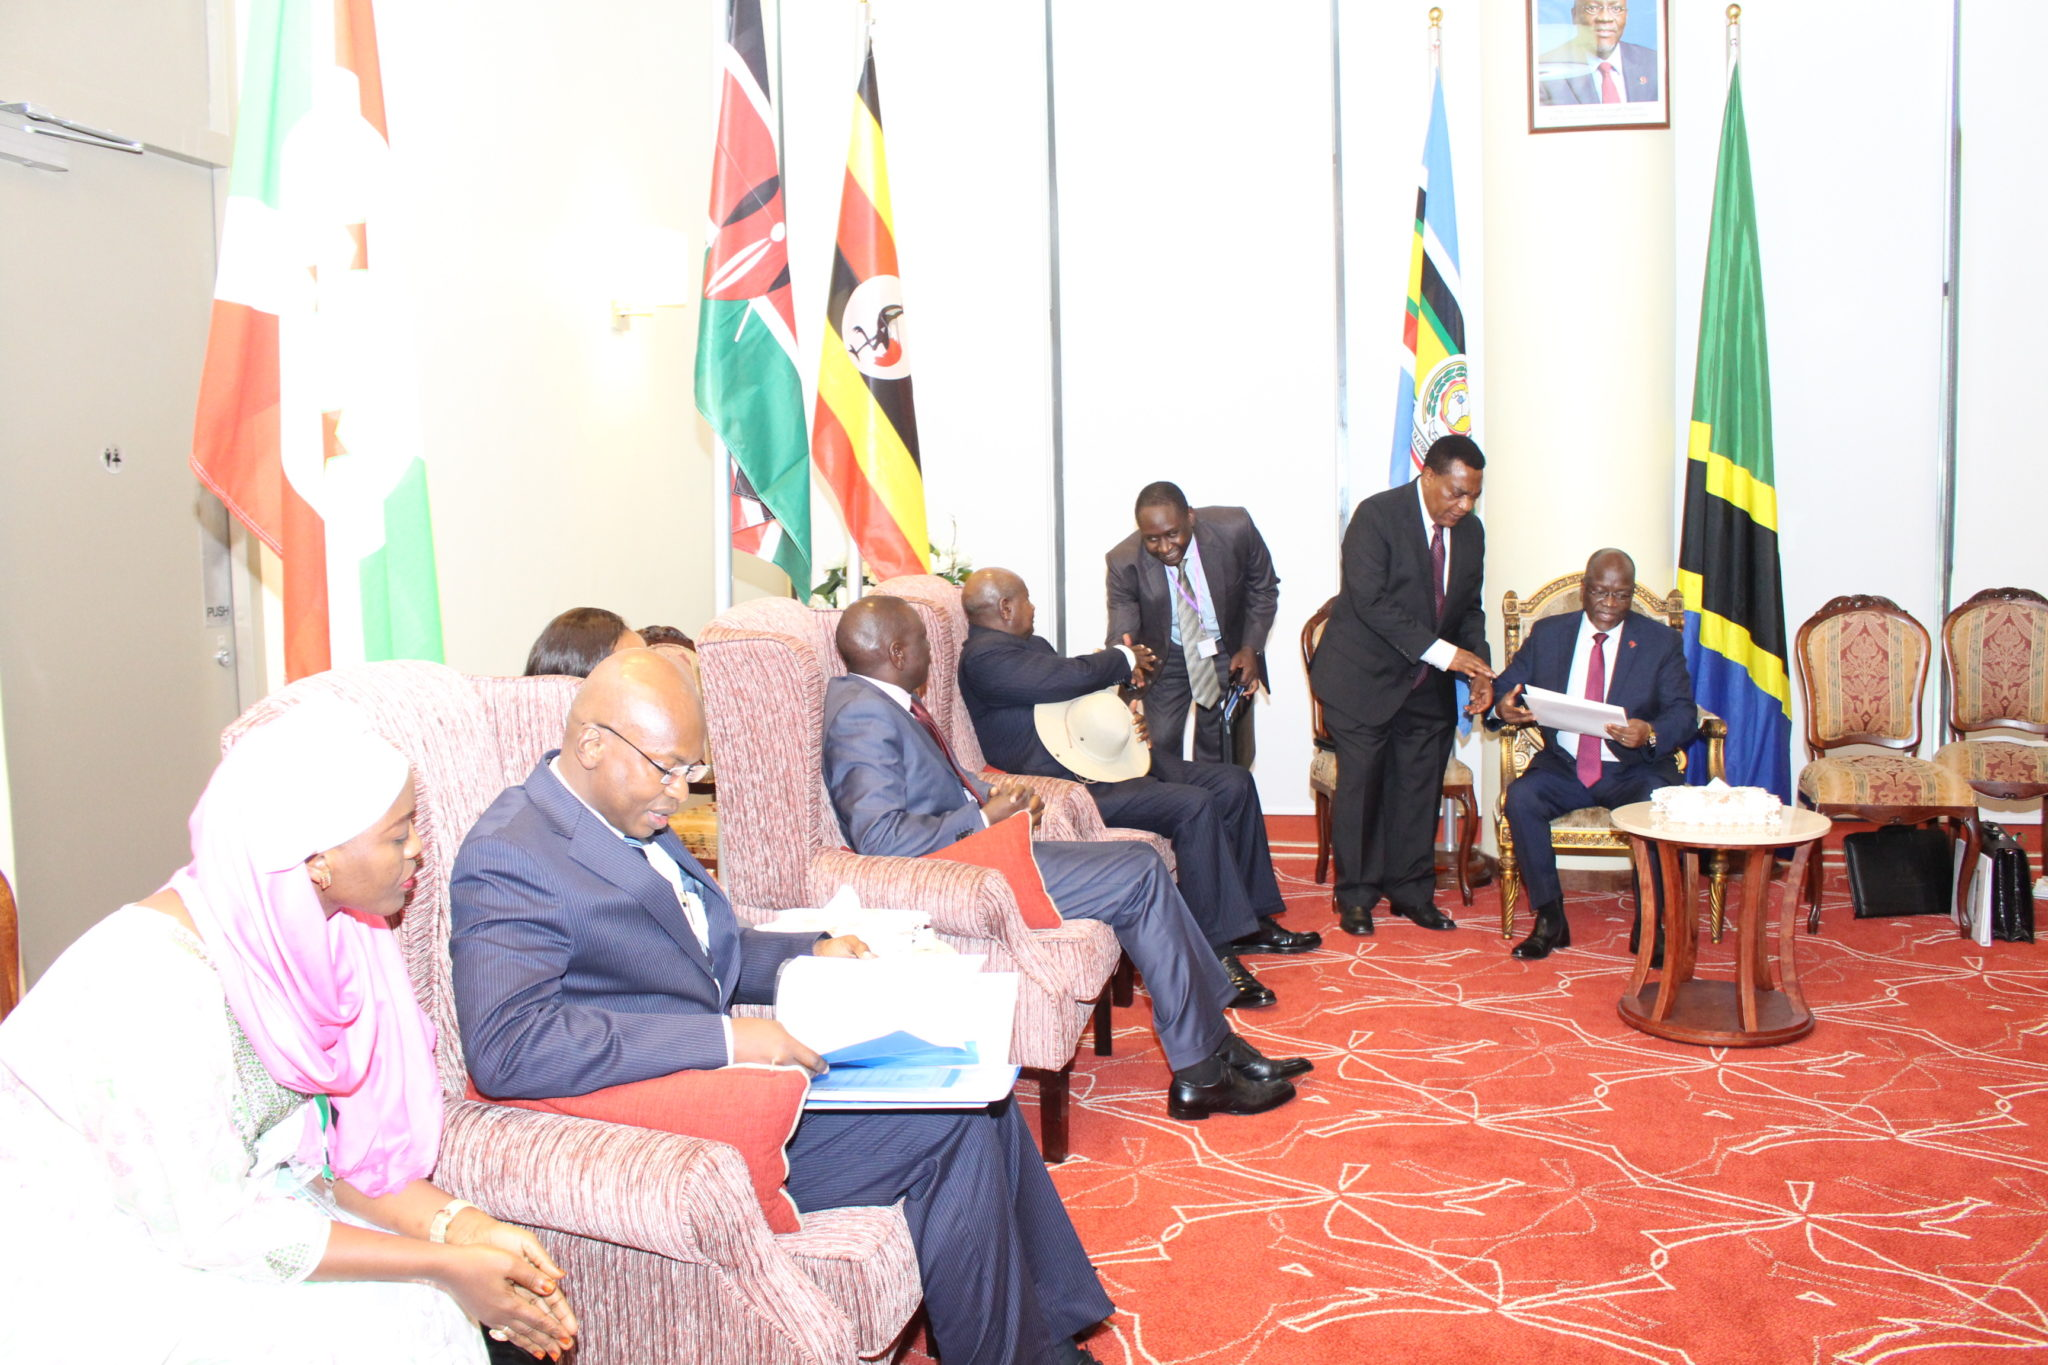 EAC Heads of State and Ministers in charge of Foreign Affairs and EAC matters during the closed session. All photos courtesy of EAC.